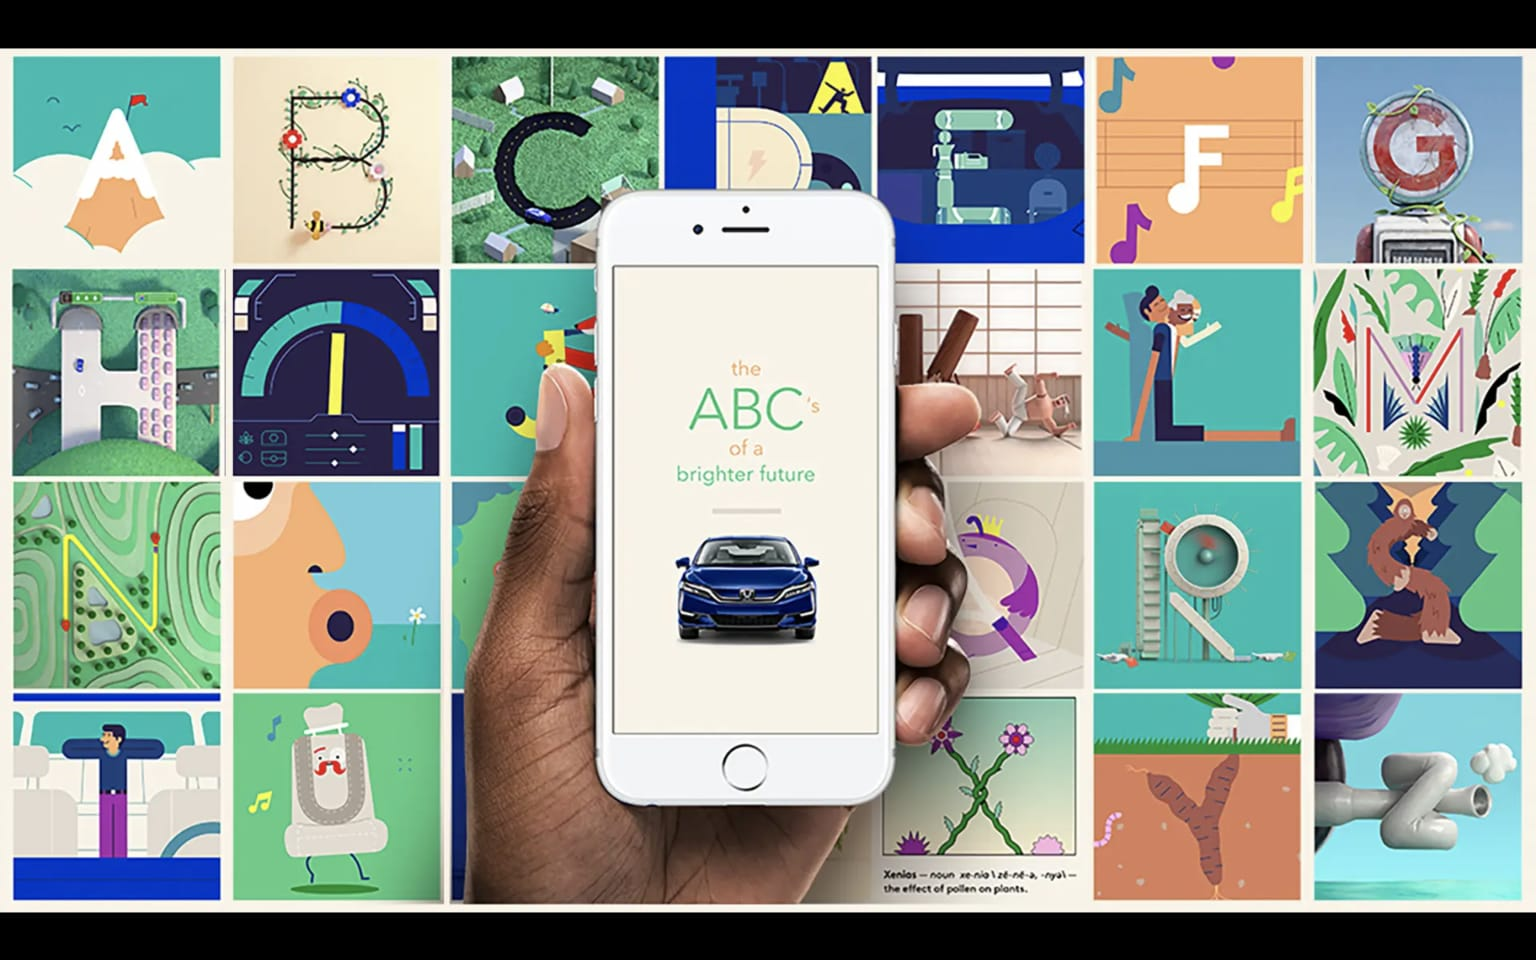 The ABCs of a Brighter Future